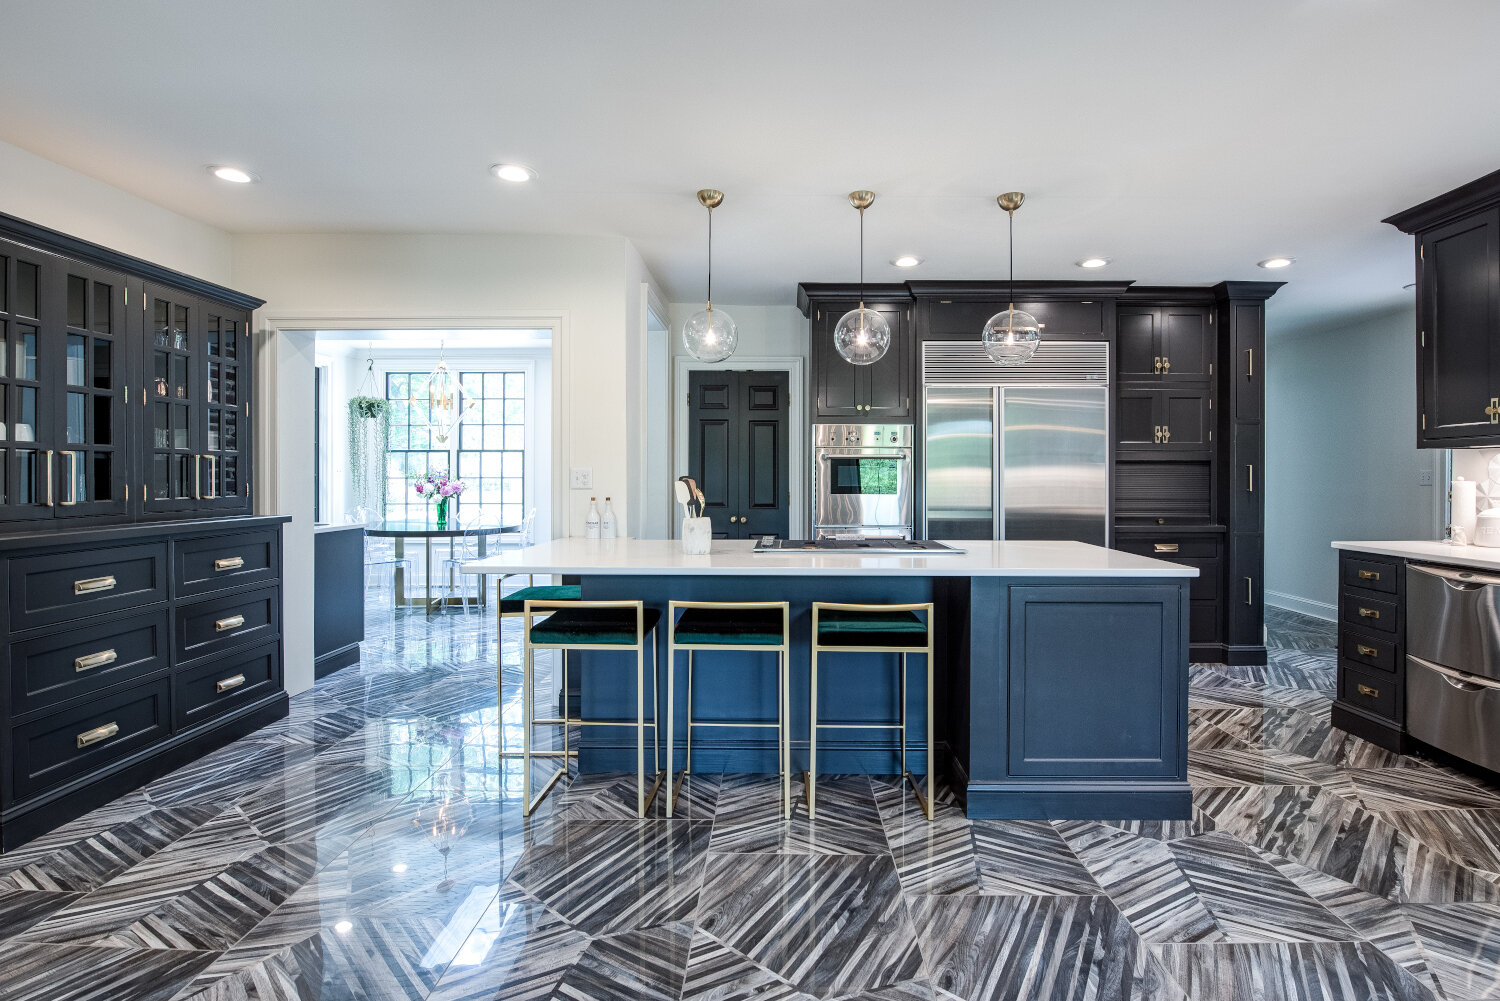 Designers Sticks 2 Stones Design Custom Cabinetry In Knoxville Tennessee Custom Kitchen Cabinets Knoxville Cabinet Companies In Knoxville Tn Cabinet Installation Knoxville Tn Kitchen Countertops Knoxville